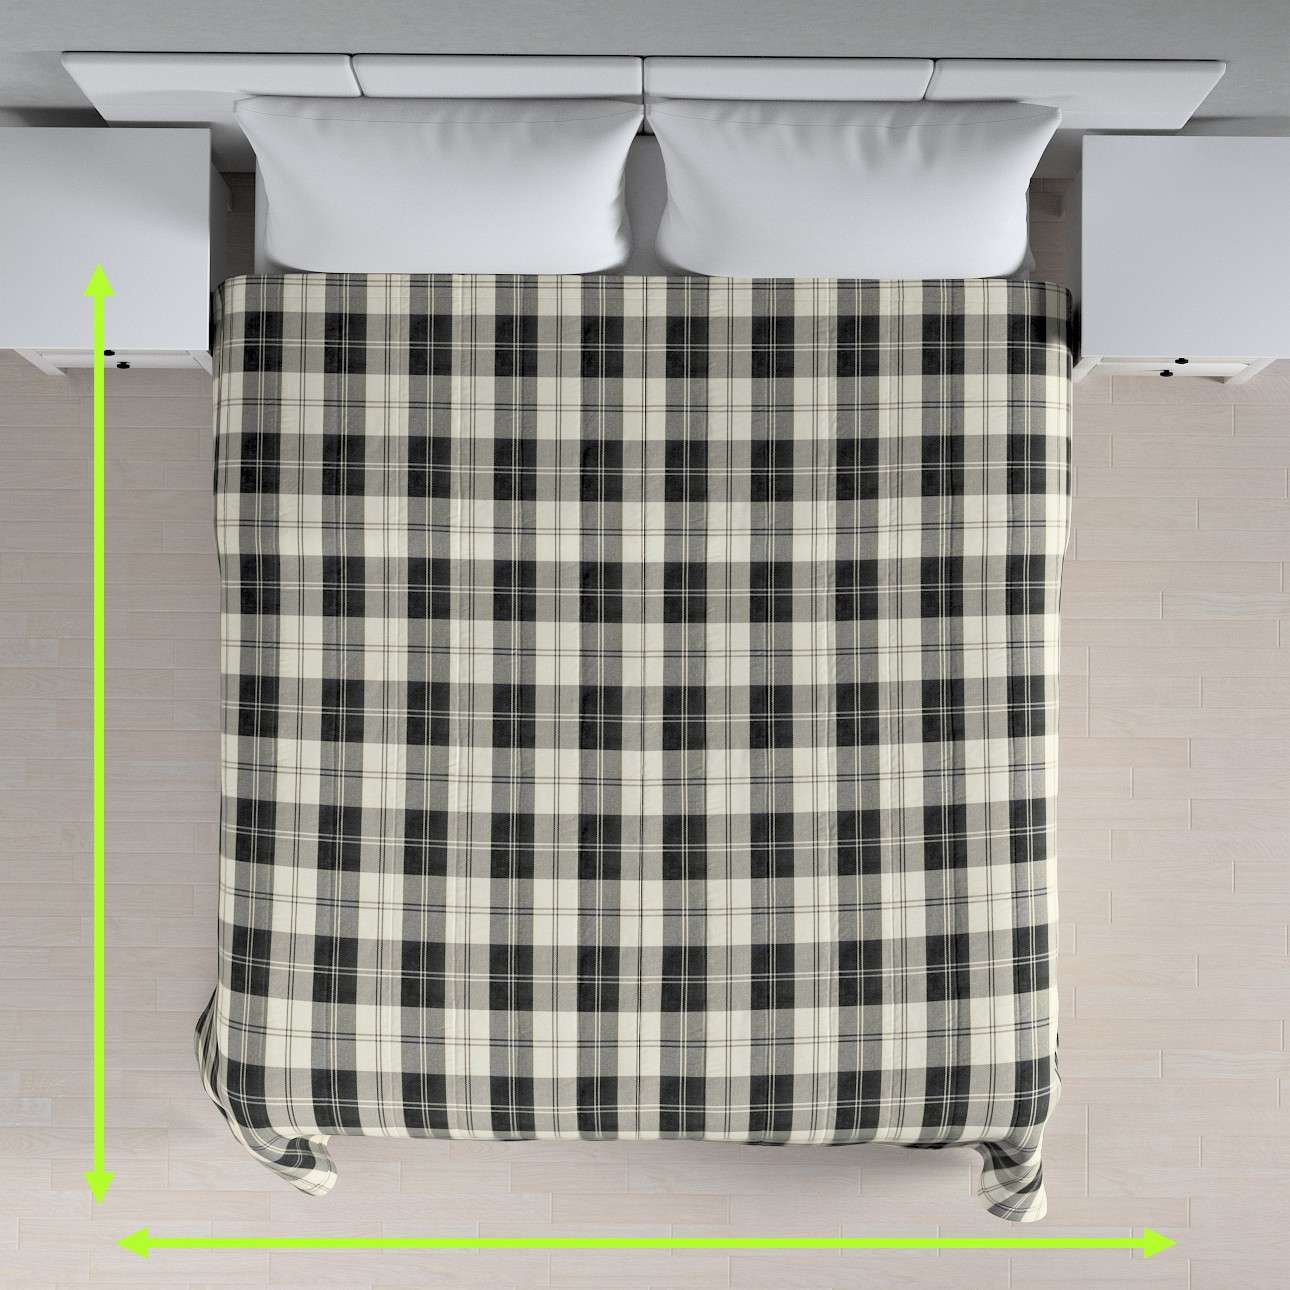 Quilted throw (vertical quilt pattern) in collection Edinburgh, fabric: 115-74